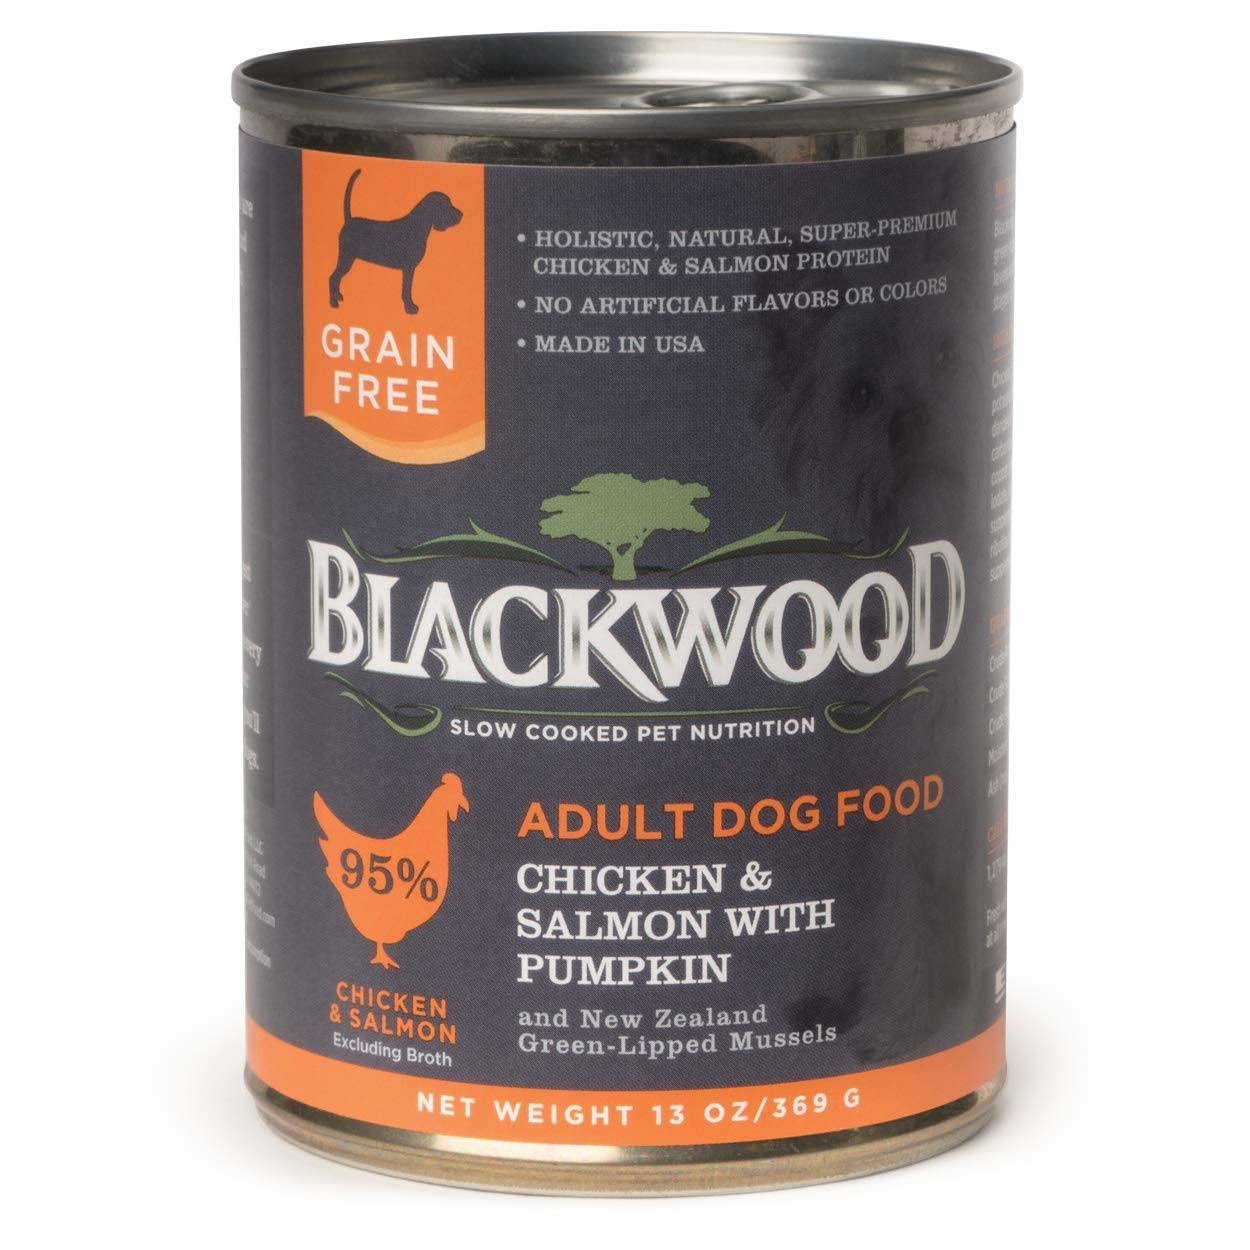 Blackwood Chicken & Salmon with Pumpkin Grain-Free Adult Canned Dog Food, 13-oz, Case